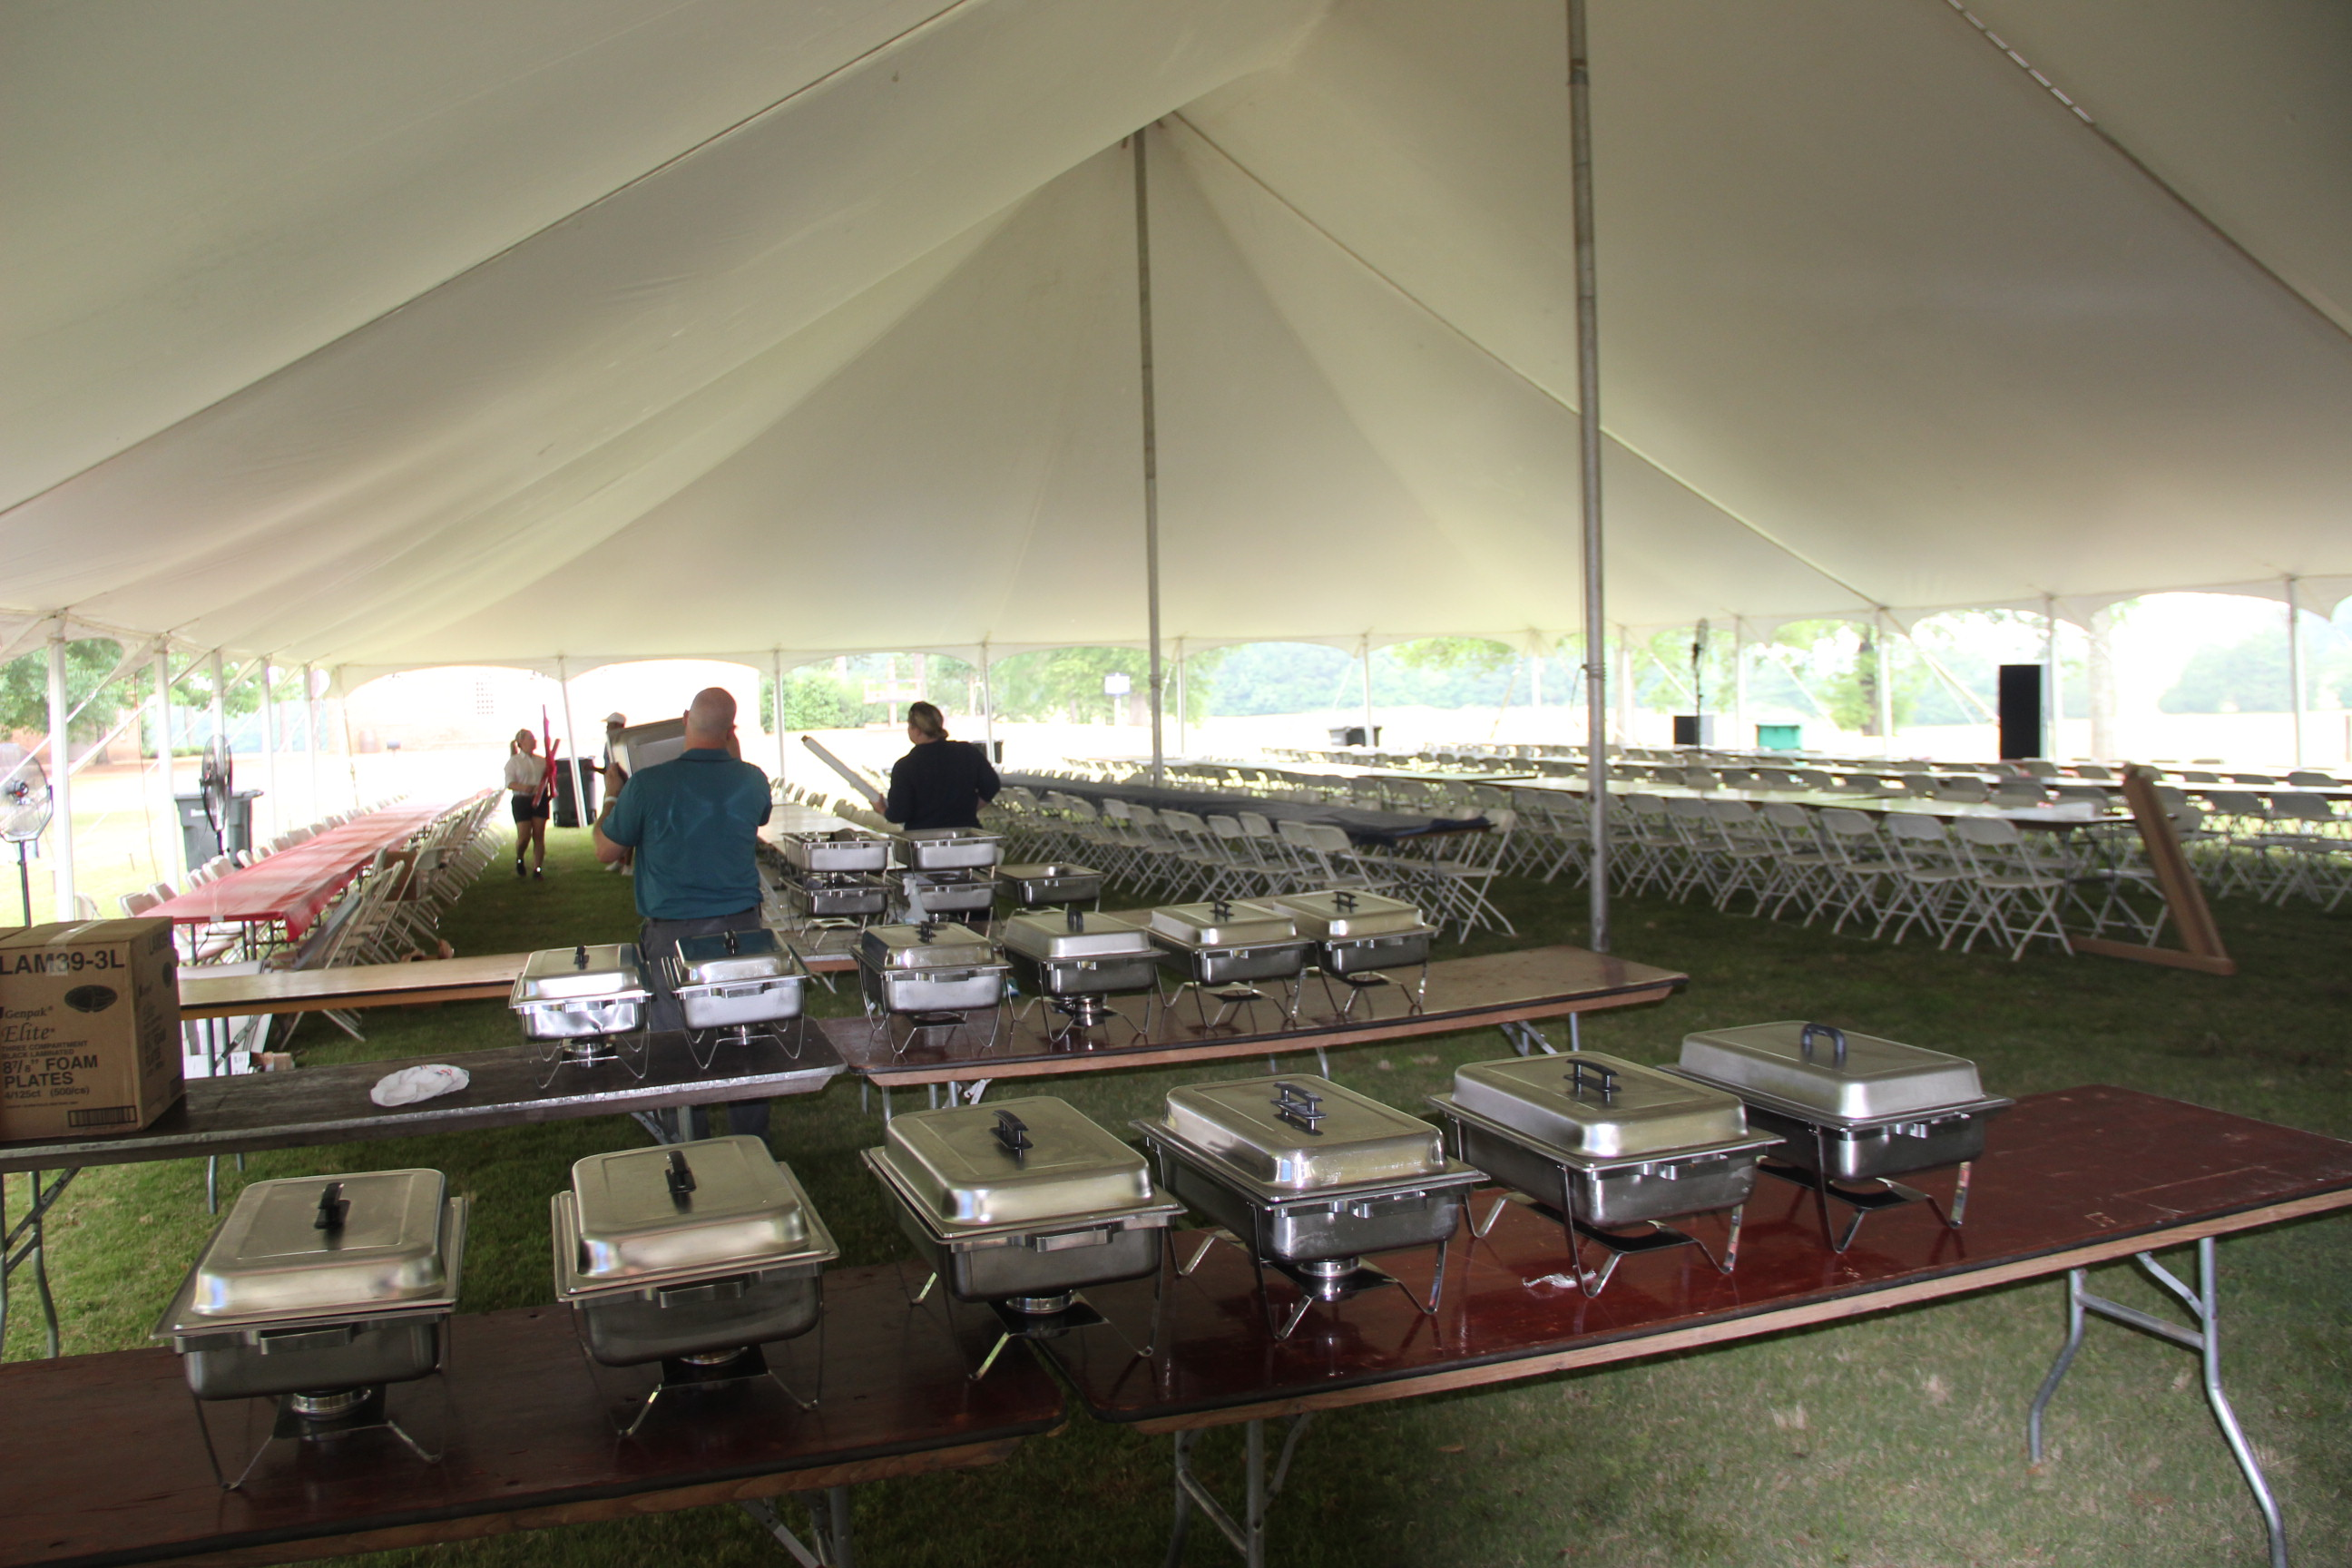 Image of food being set up under the tent